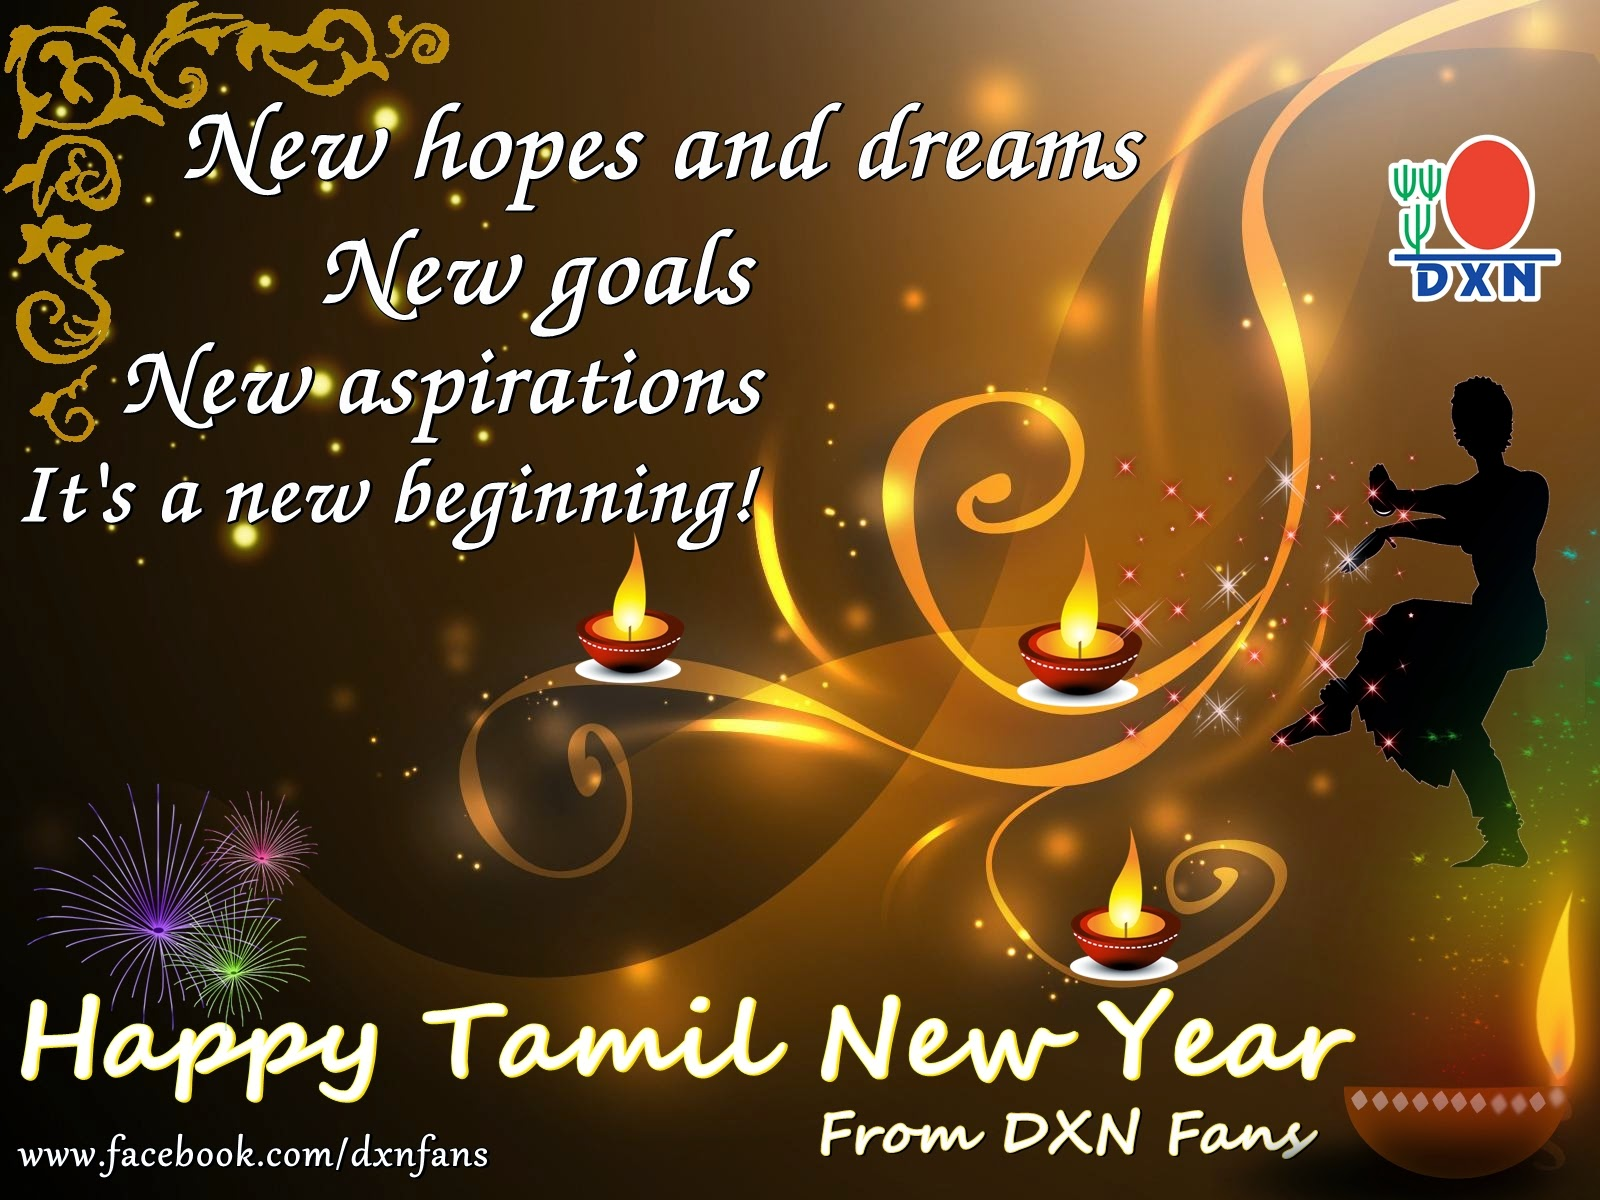 Welcome to the dxn fans blog happy tamil new year 2015 as you begin a new year we hope you are blessed with all the ingredients for a happy healthy successful and prosperous life wishing all our tamil kristyandbryce Image collections